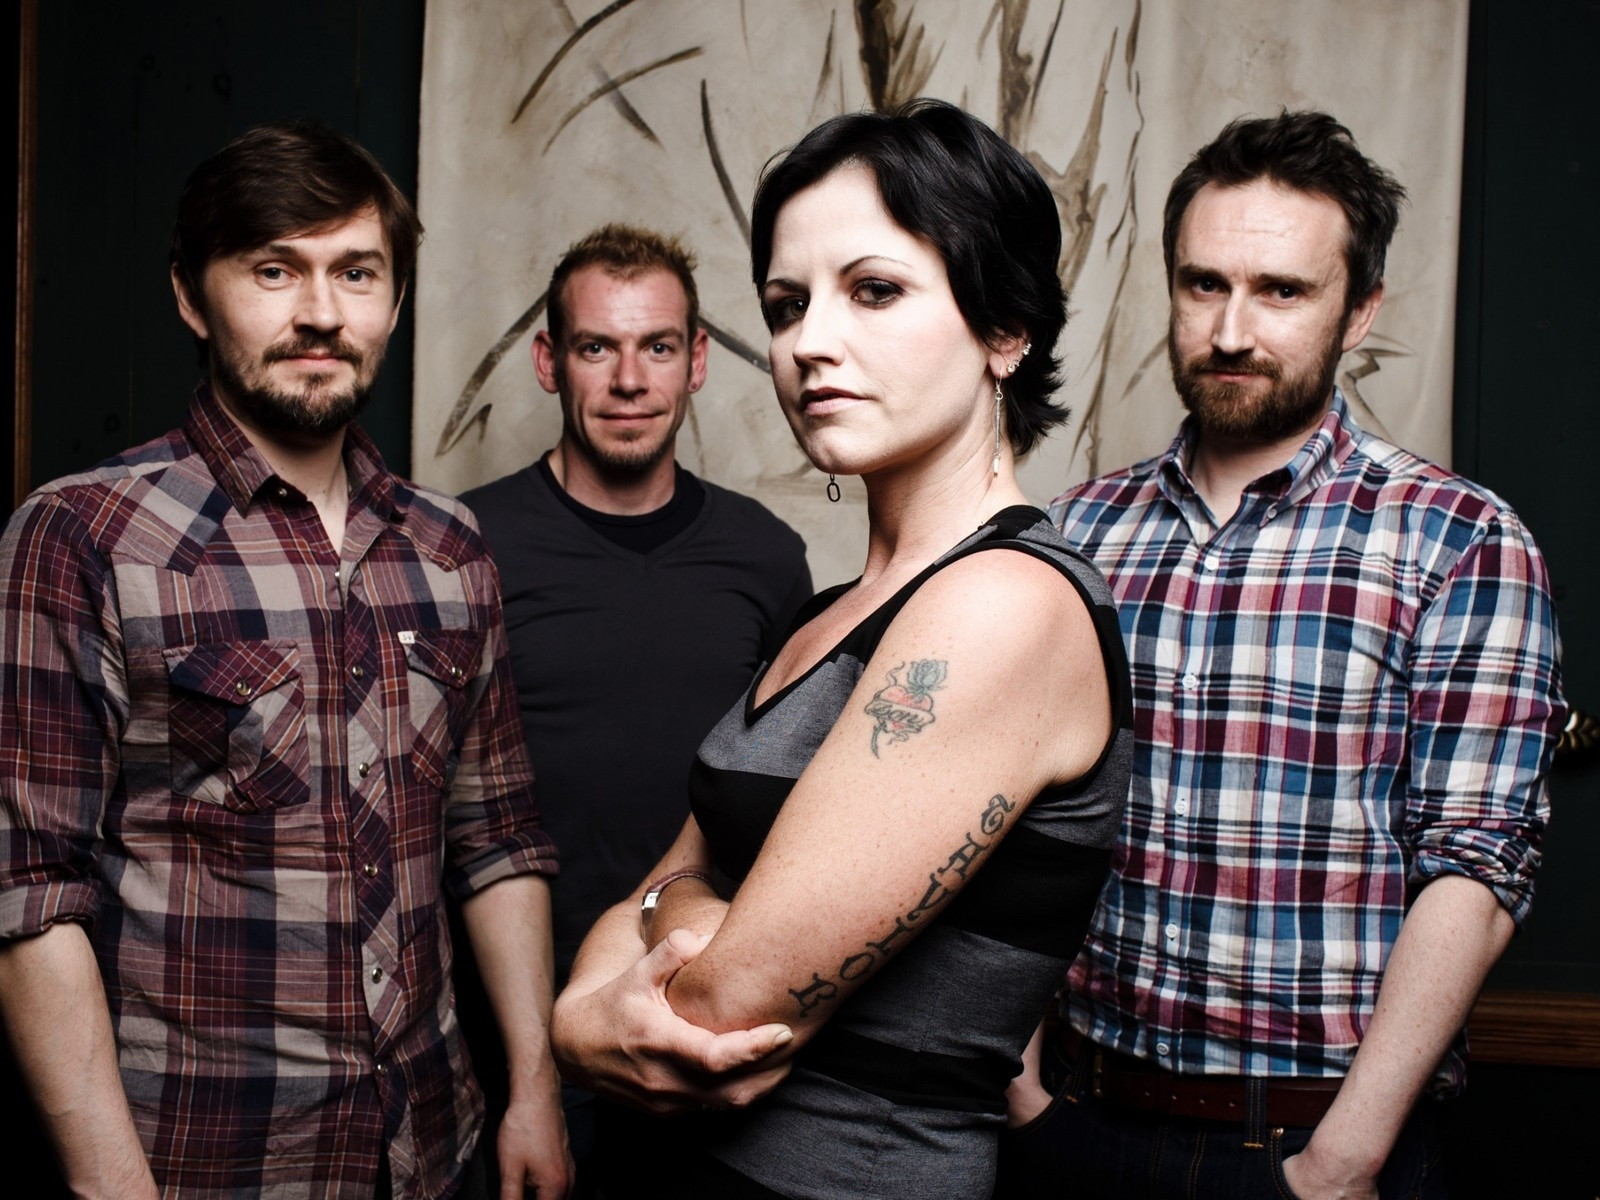 The Cranberries for 1600 x 1200 resolution